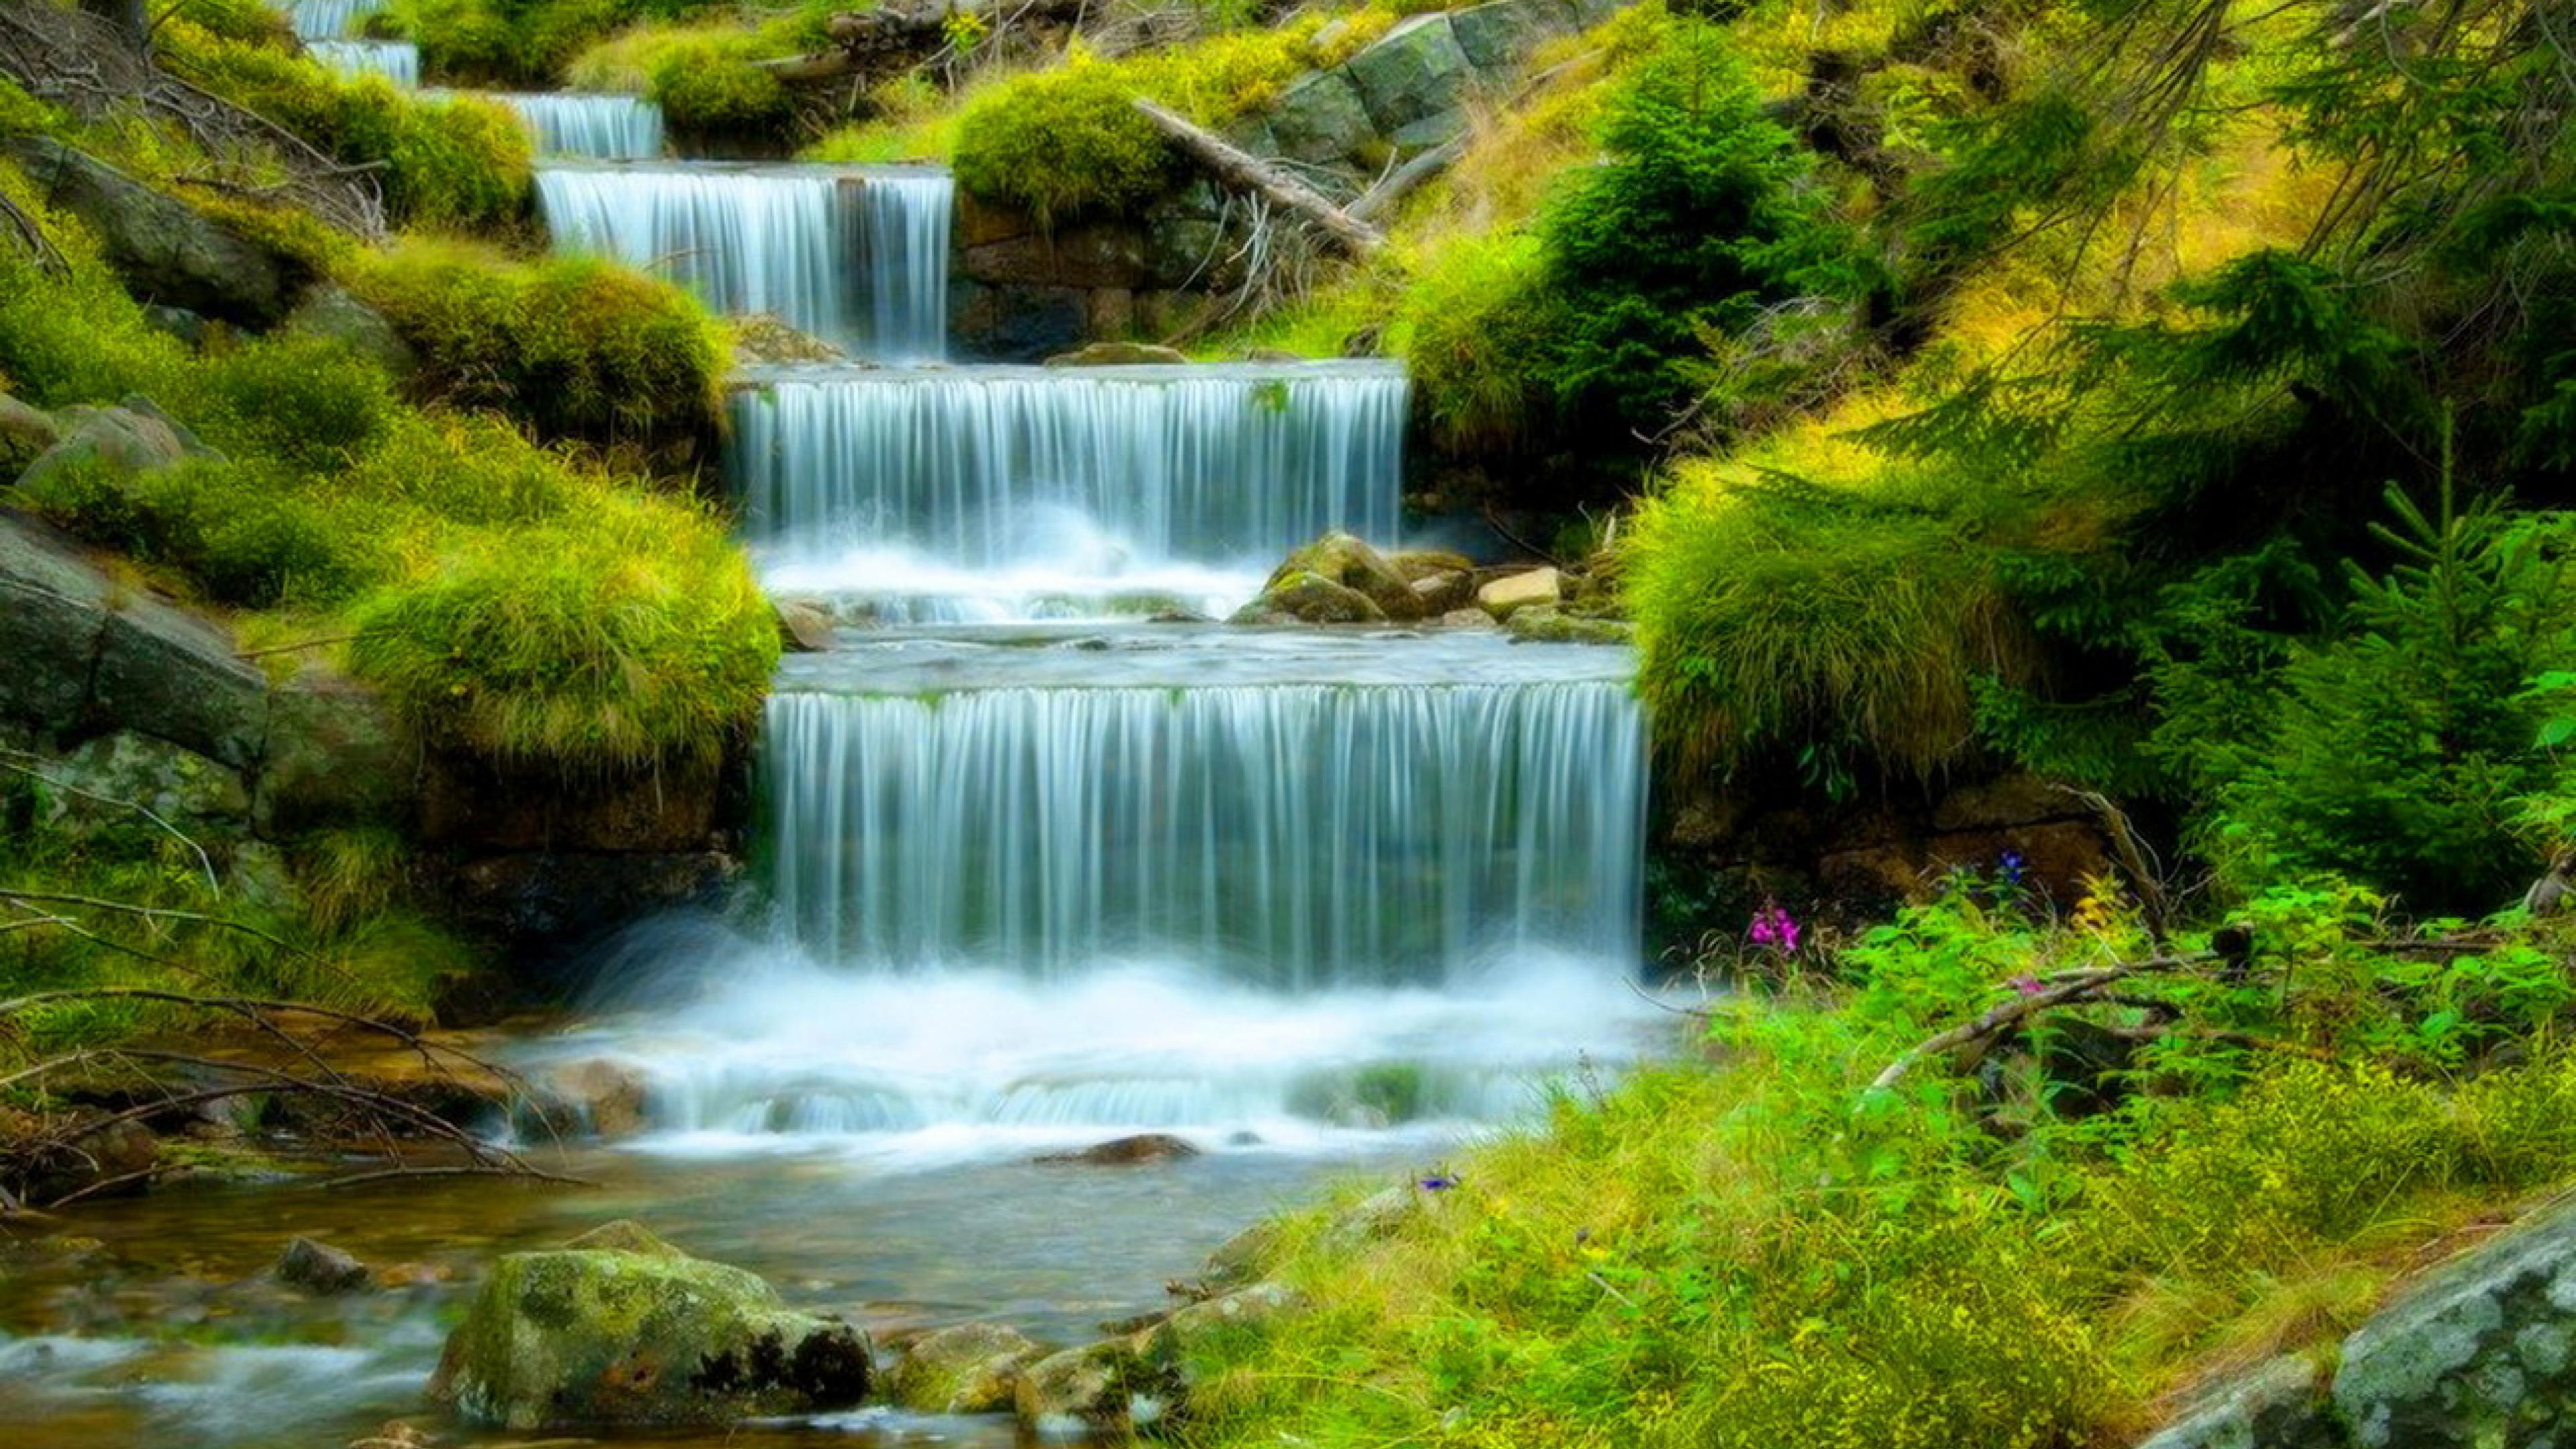 Fall Flowers Iphone Wallpaper River With Cascading Waterfall Water Stones Green Grass